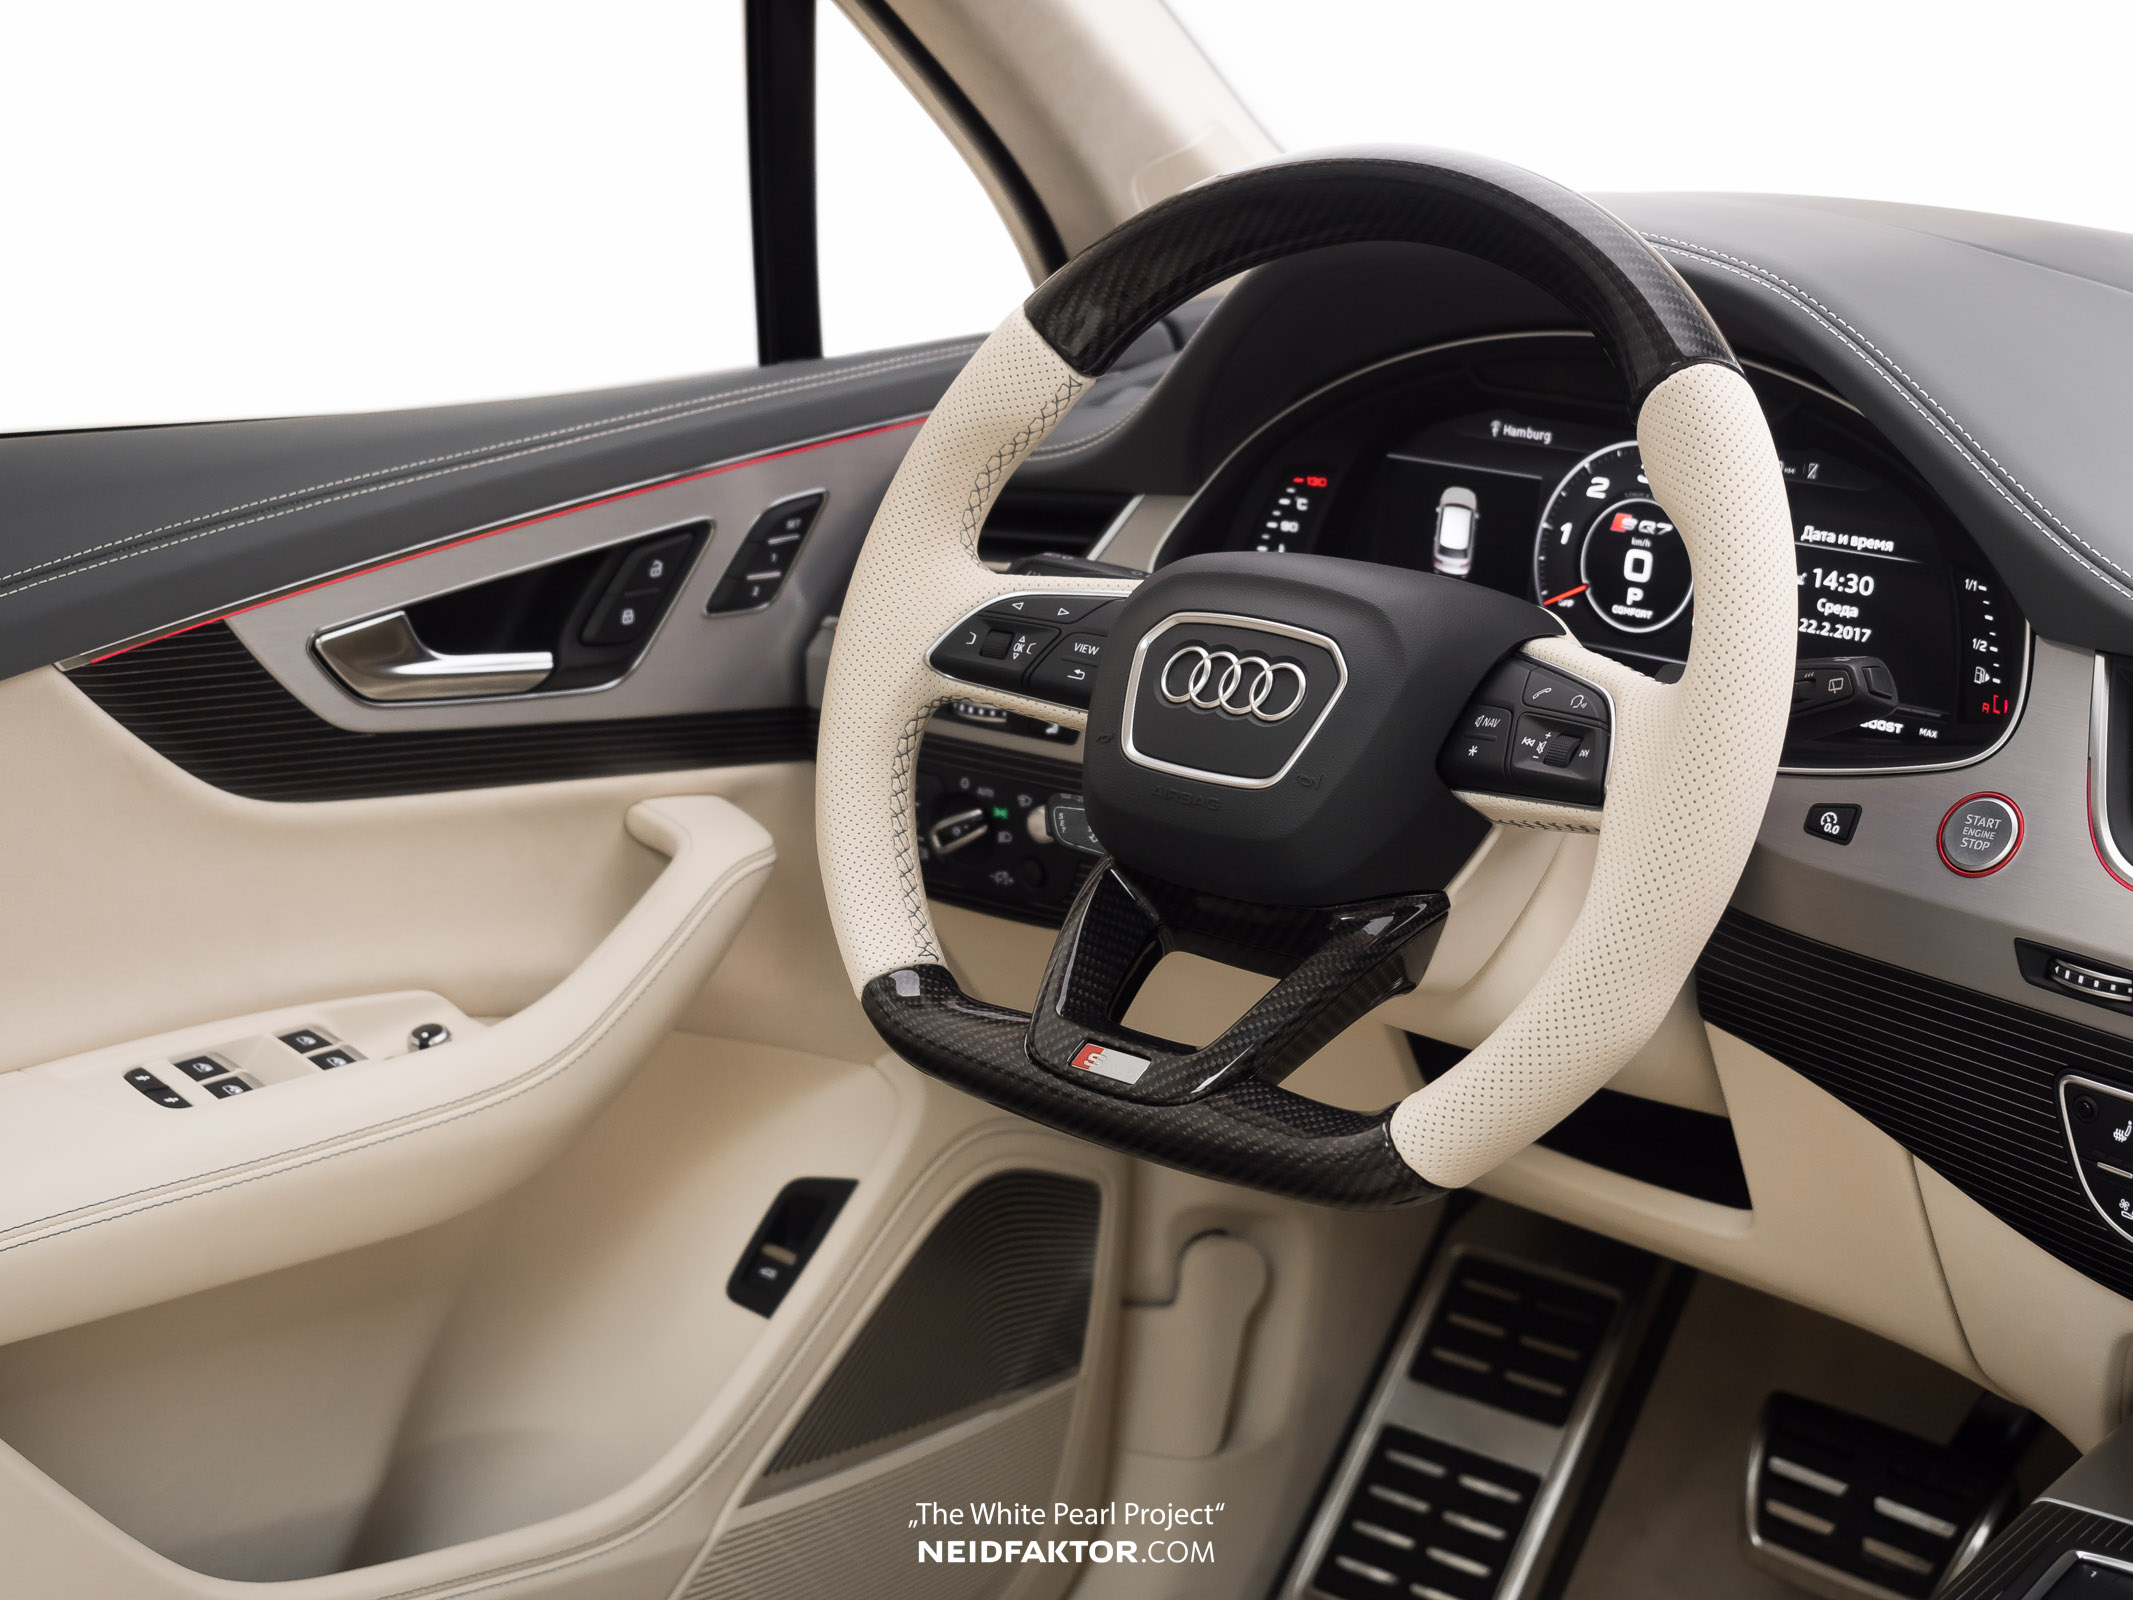 Audi Rs 7 >> Audi SQ7 Gets Carbon Fiber and Cream Leather Interior from Neidfaktor - autoevolution